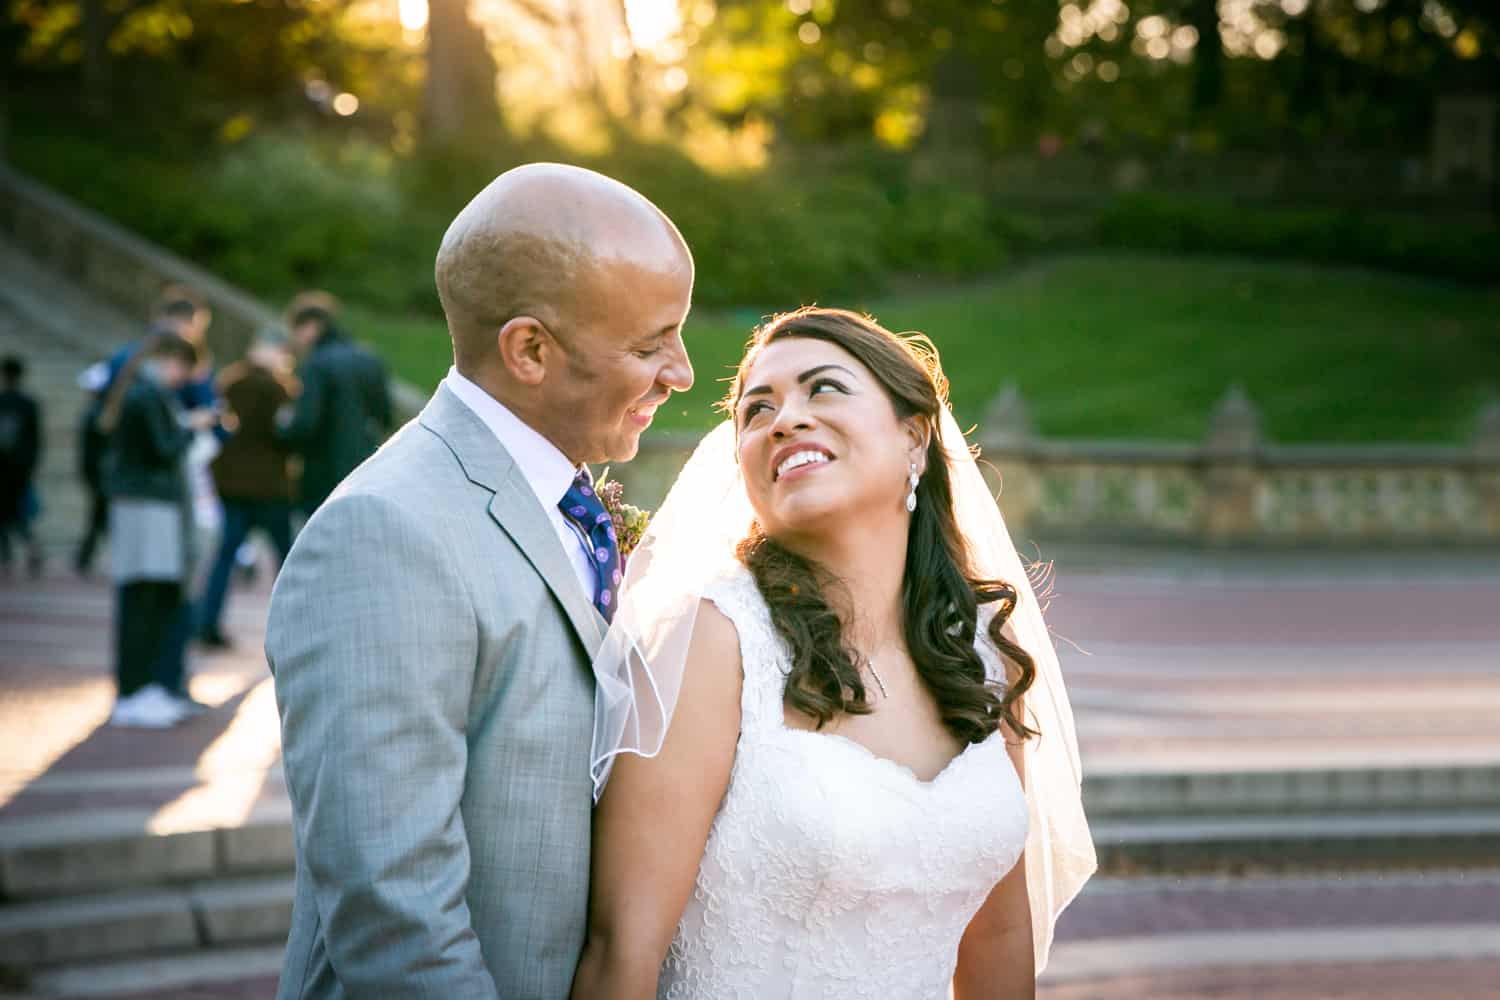 Bride and groom smiling at Bethesda Fountain in Central Park